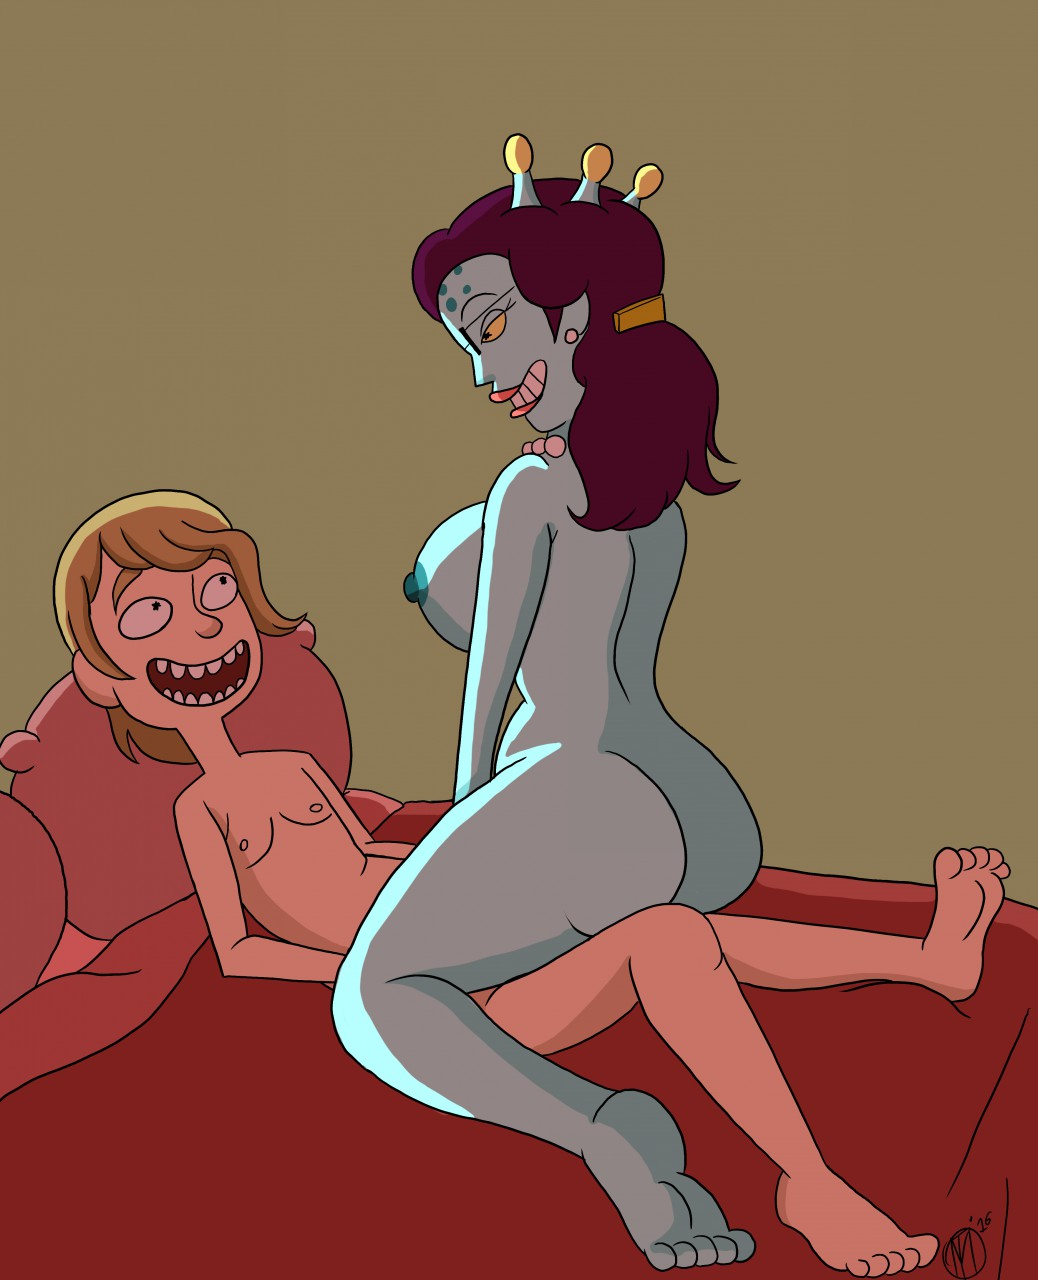 dancer rick and dinosaur morty Fosters home of imaginary friends porn